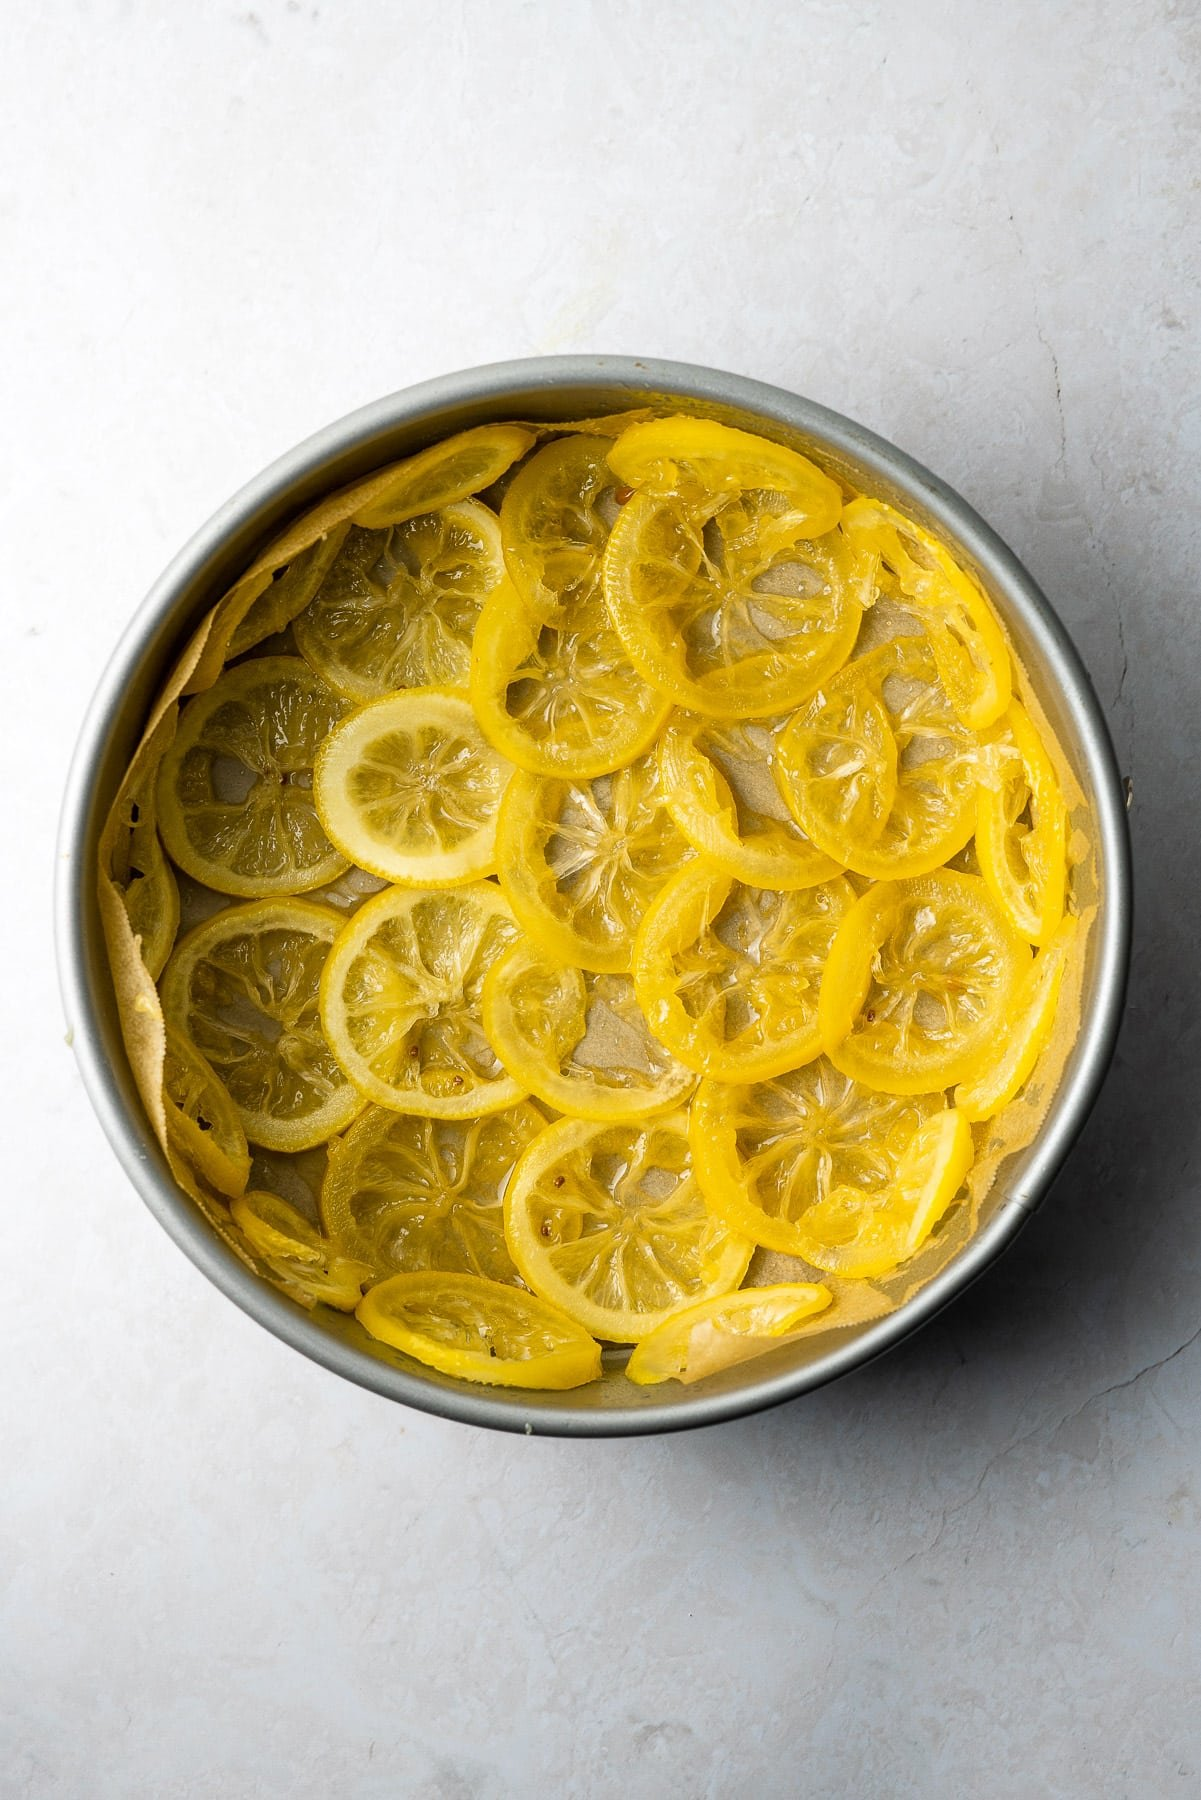 candied lemon slices layered in a springform pan